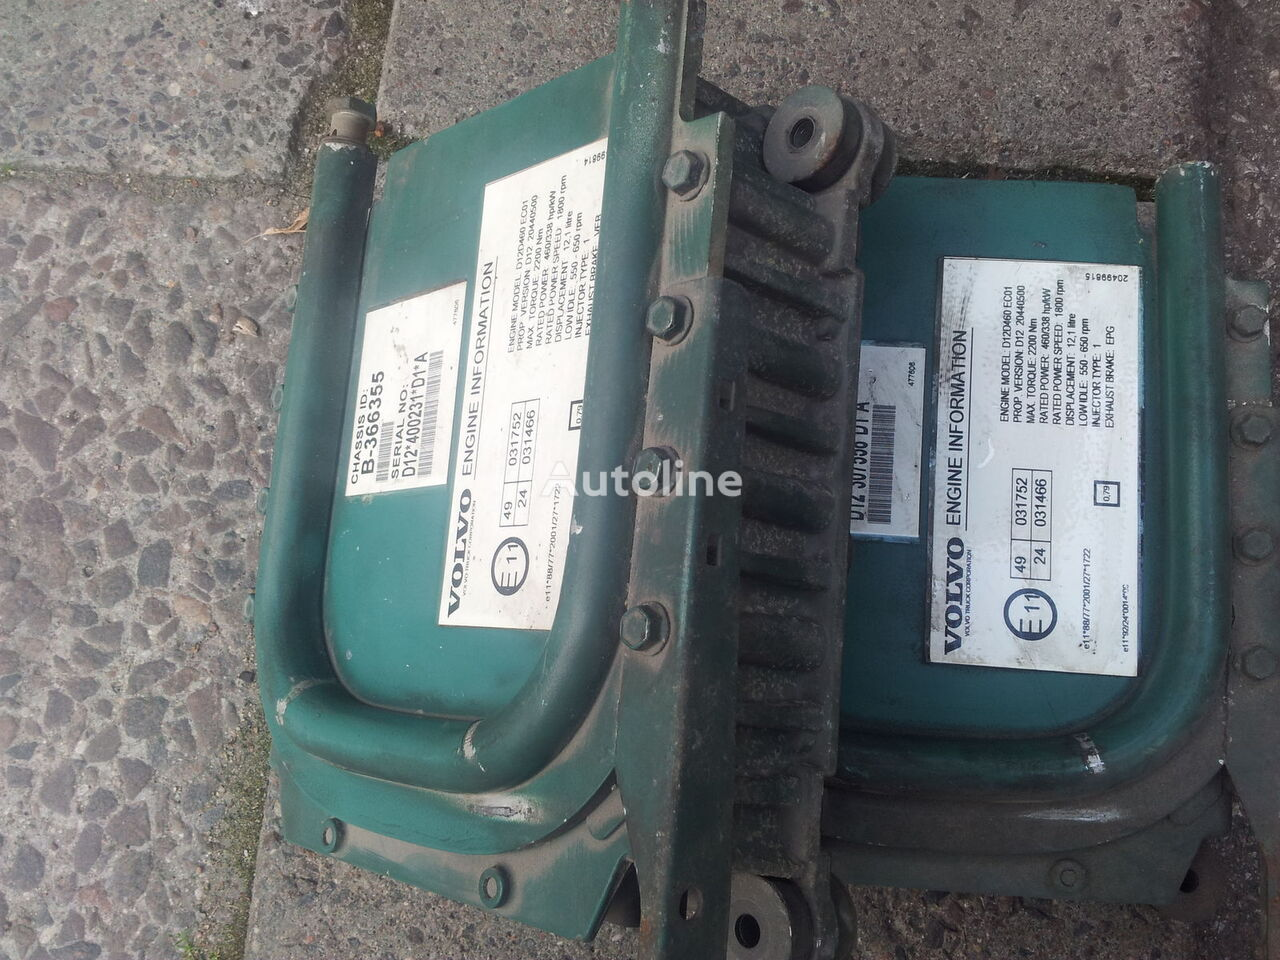 VOLVO FH12, EURO3 D12D, EDC, ECU, D12D420, D12D460, D12D380, engine control unit 460PS; 420PS; 20440501; 20440500, 3161962, 20577131, 85107712, 85000086, 85000388, 20582958, 85111405, 85107712, 03161962, 08170700 control unit for VOLVO FH12 tractor unit